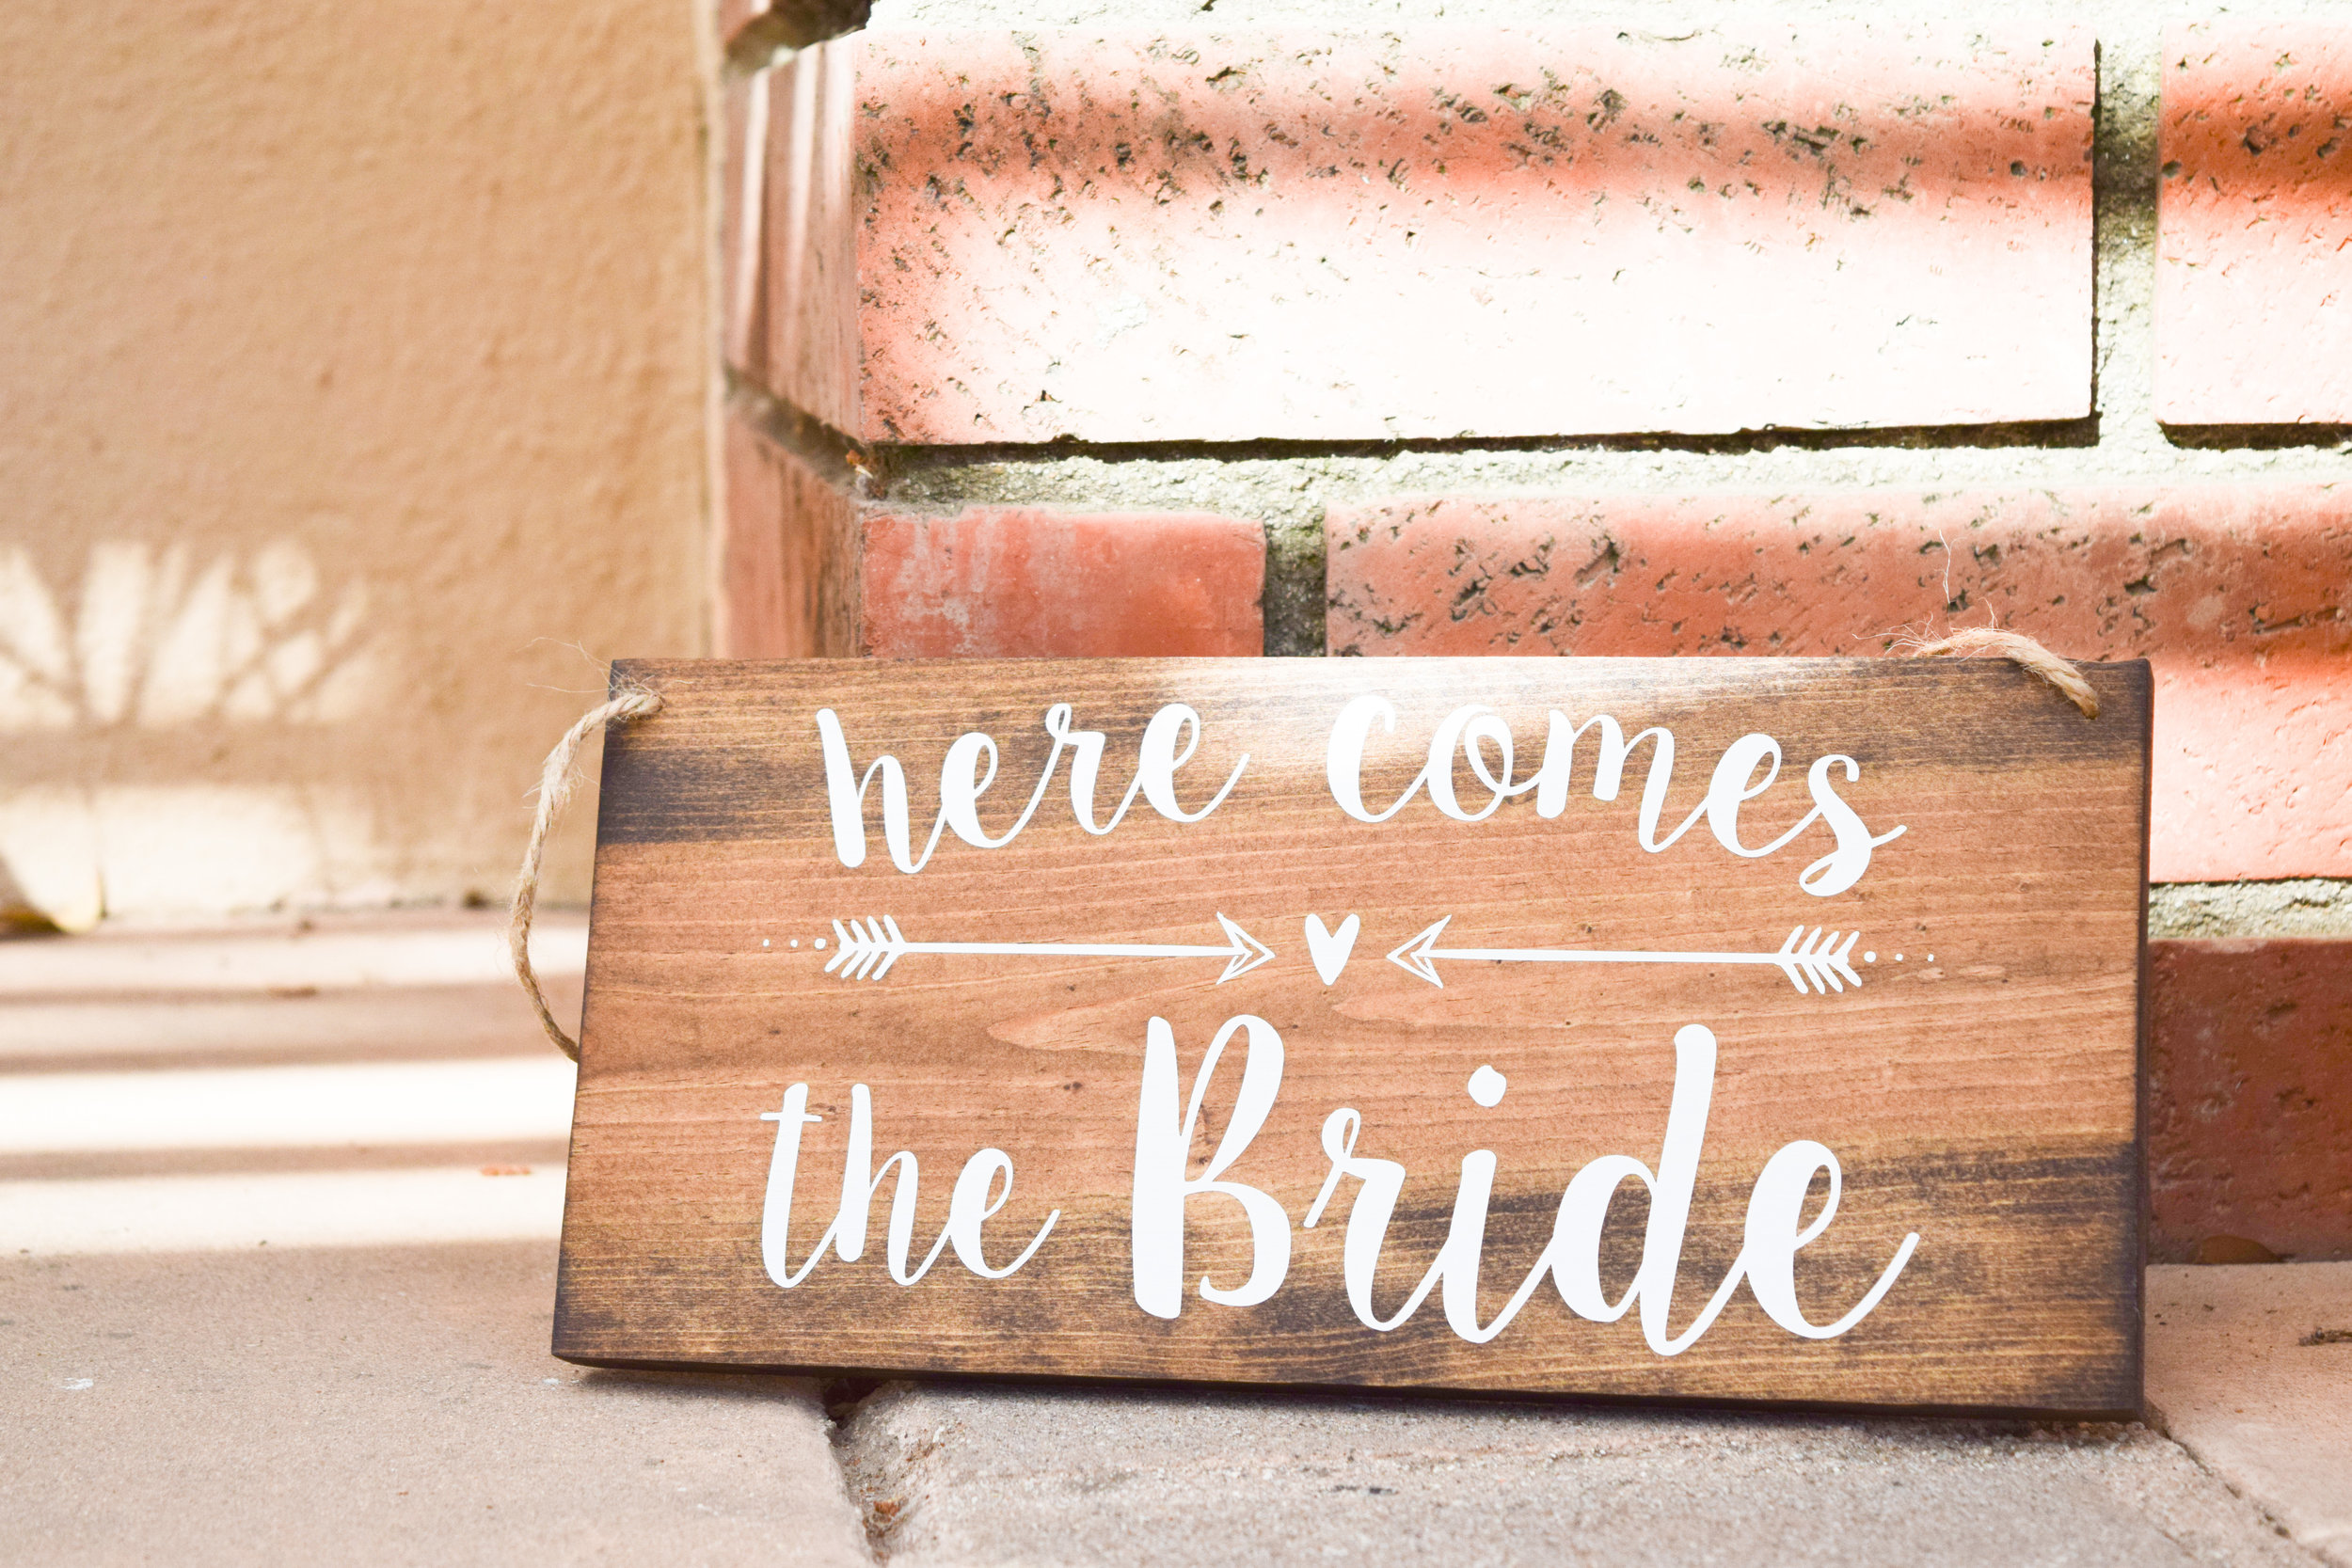 The Bridal Boutique | Wooden Wedding Signs by The Rusty Arrow